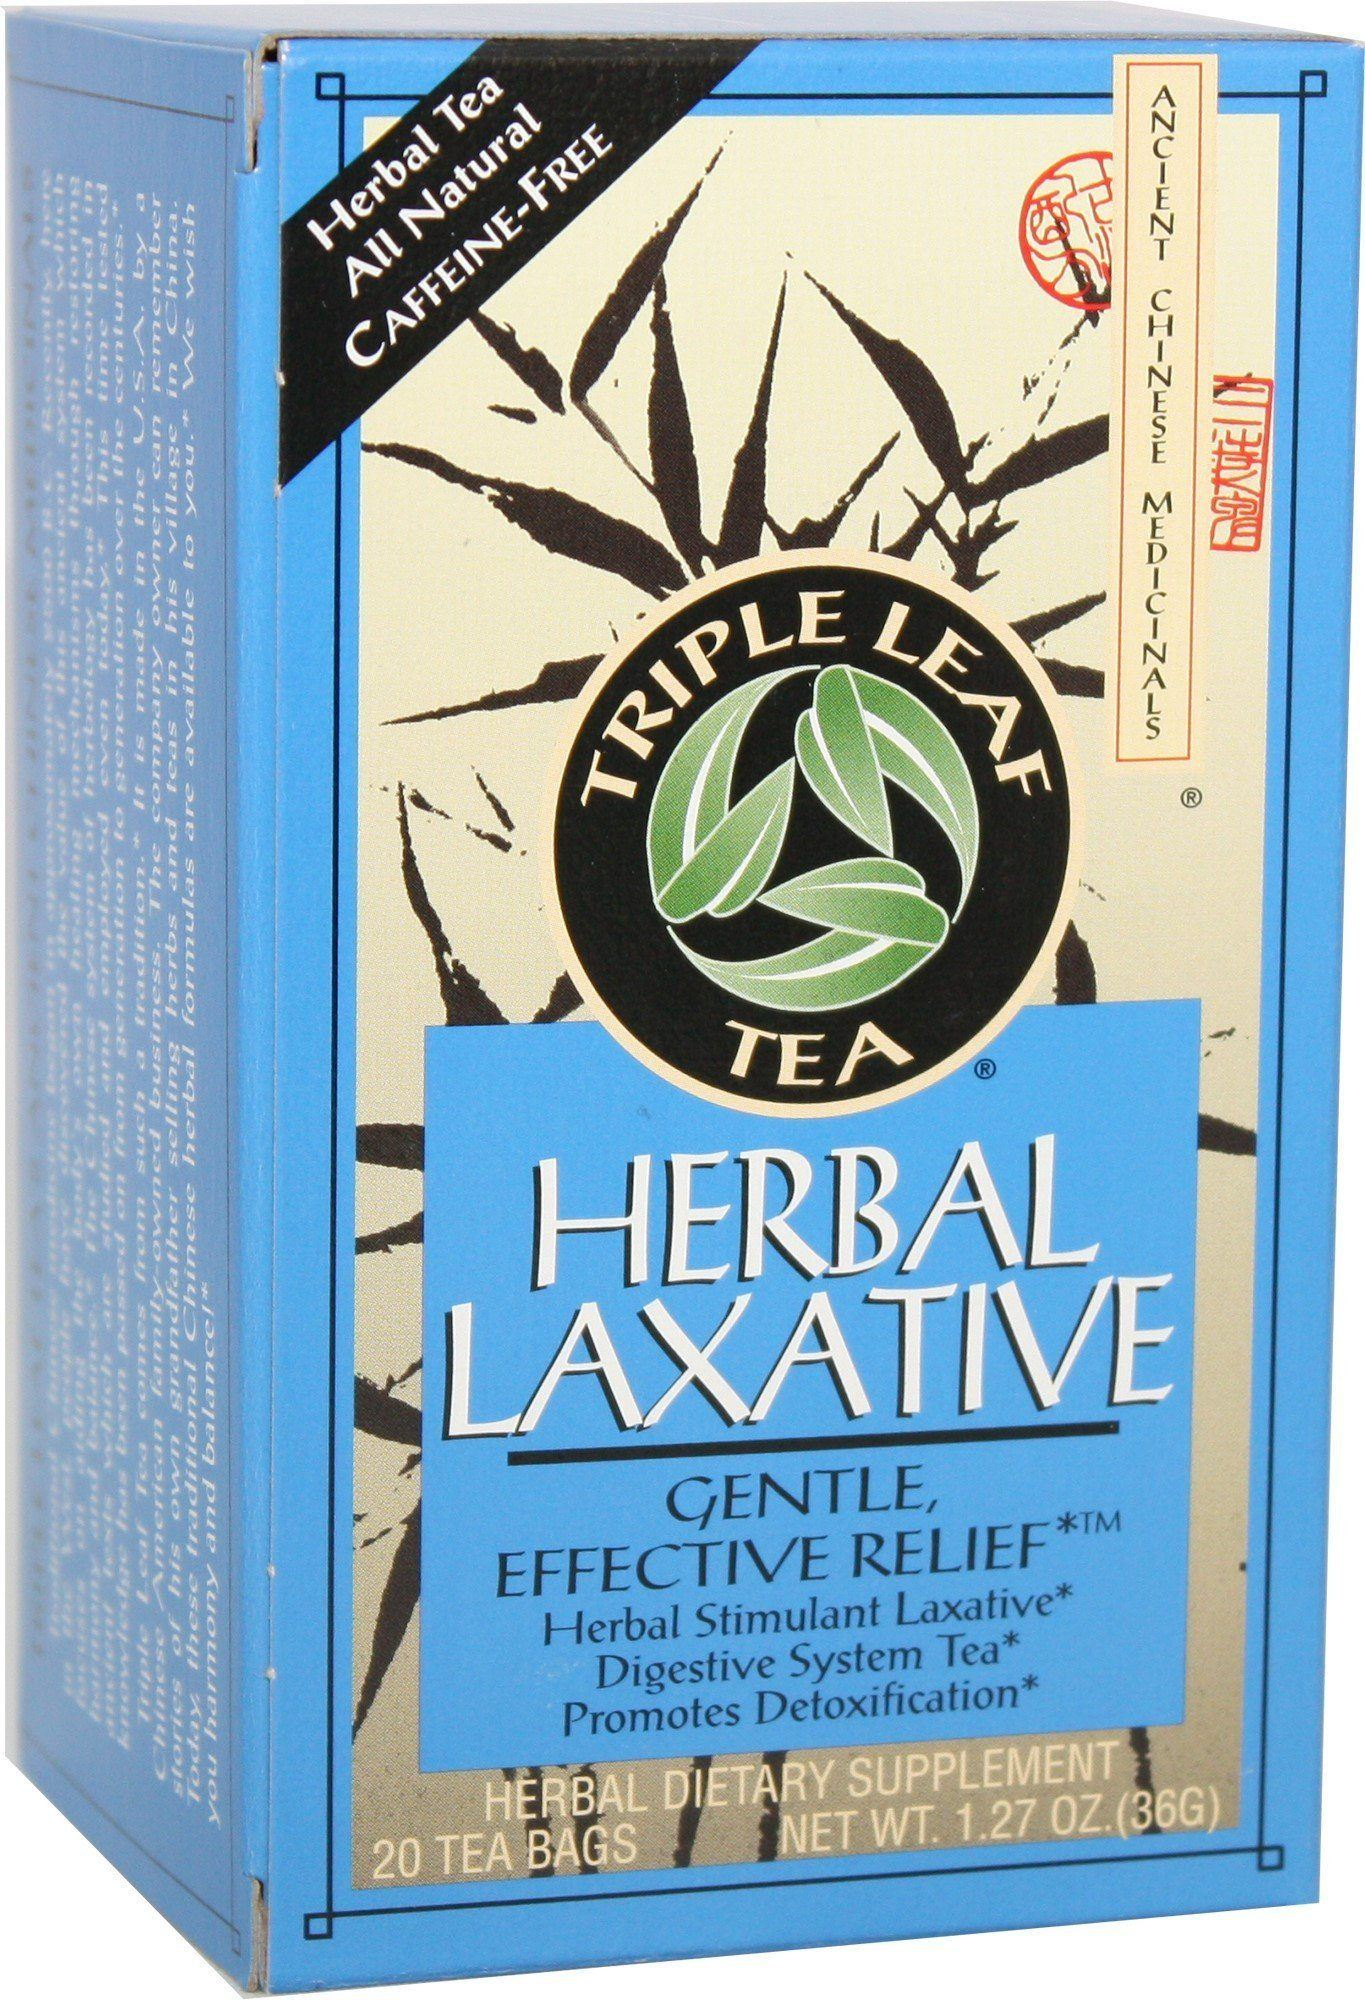 Food & Drink - Triple Leaf Brand - Herbal Laxative Tea, 20 Bags